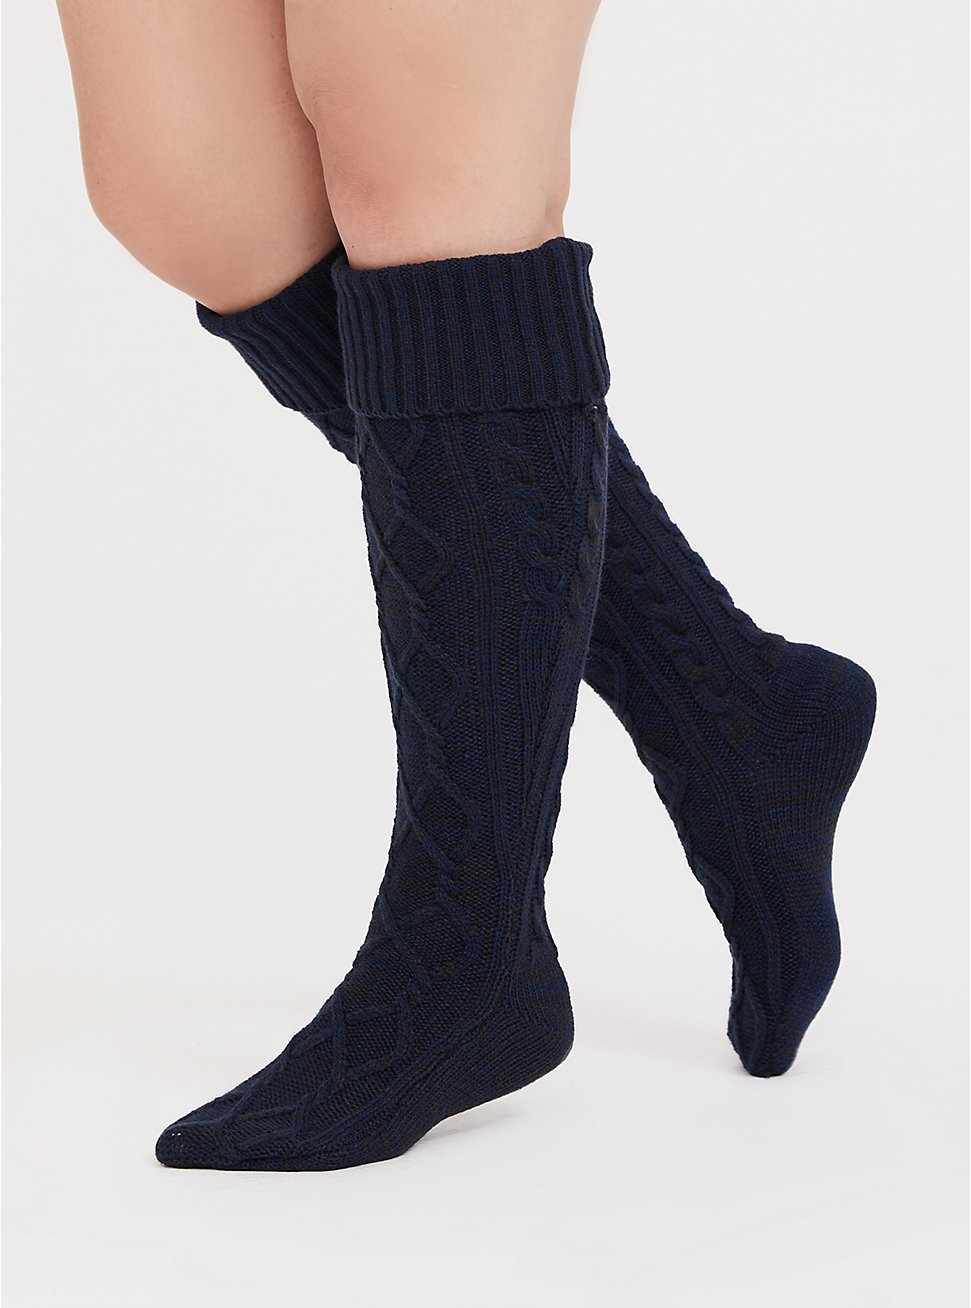 Navy Blue Marled Cable Knit Knee-High Socks, NAVY, hi-res